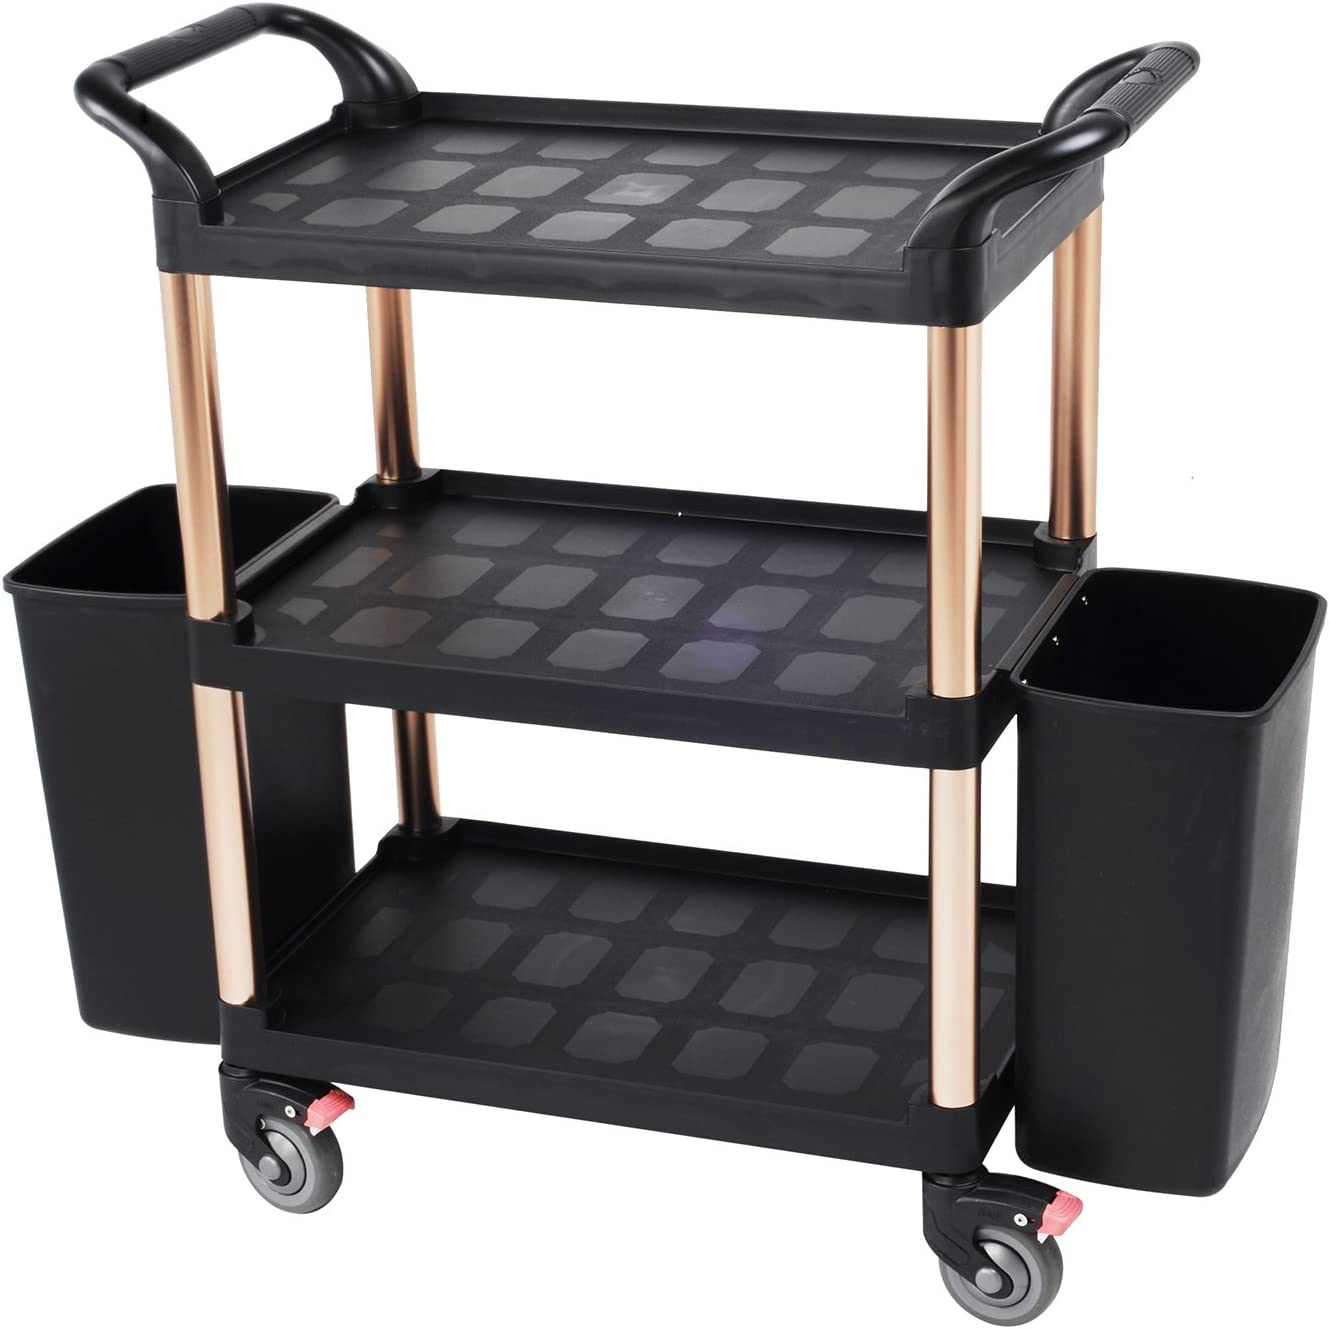 SCC-03 AMENITIES DEPOT Serving Cart 3-Tier Kitchen Trolley Cart with 2 Buckets and Brake Wheels